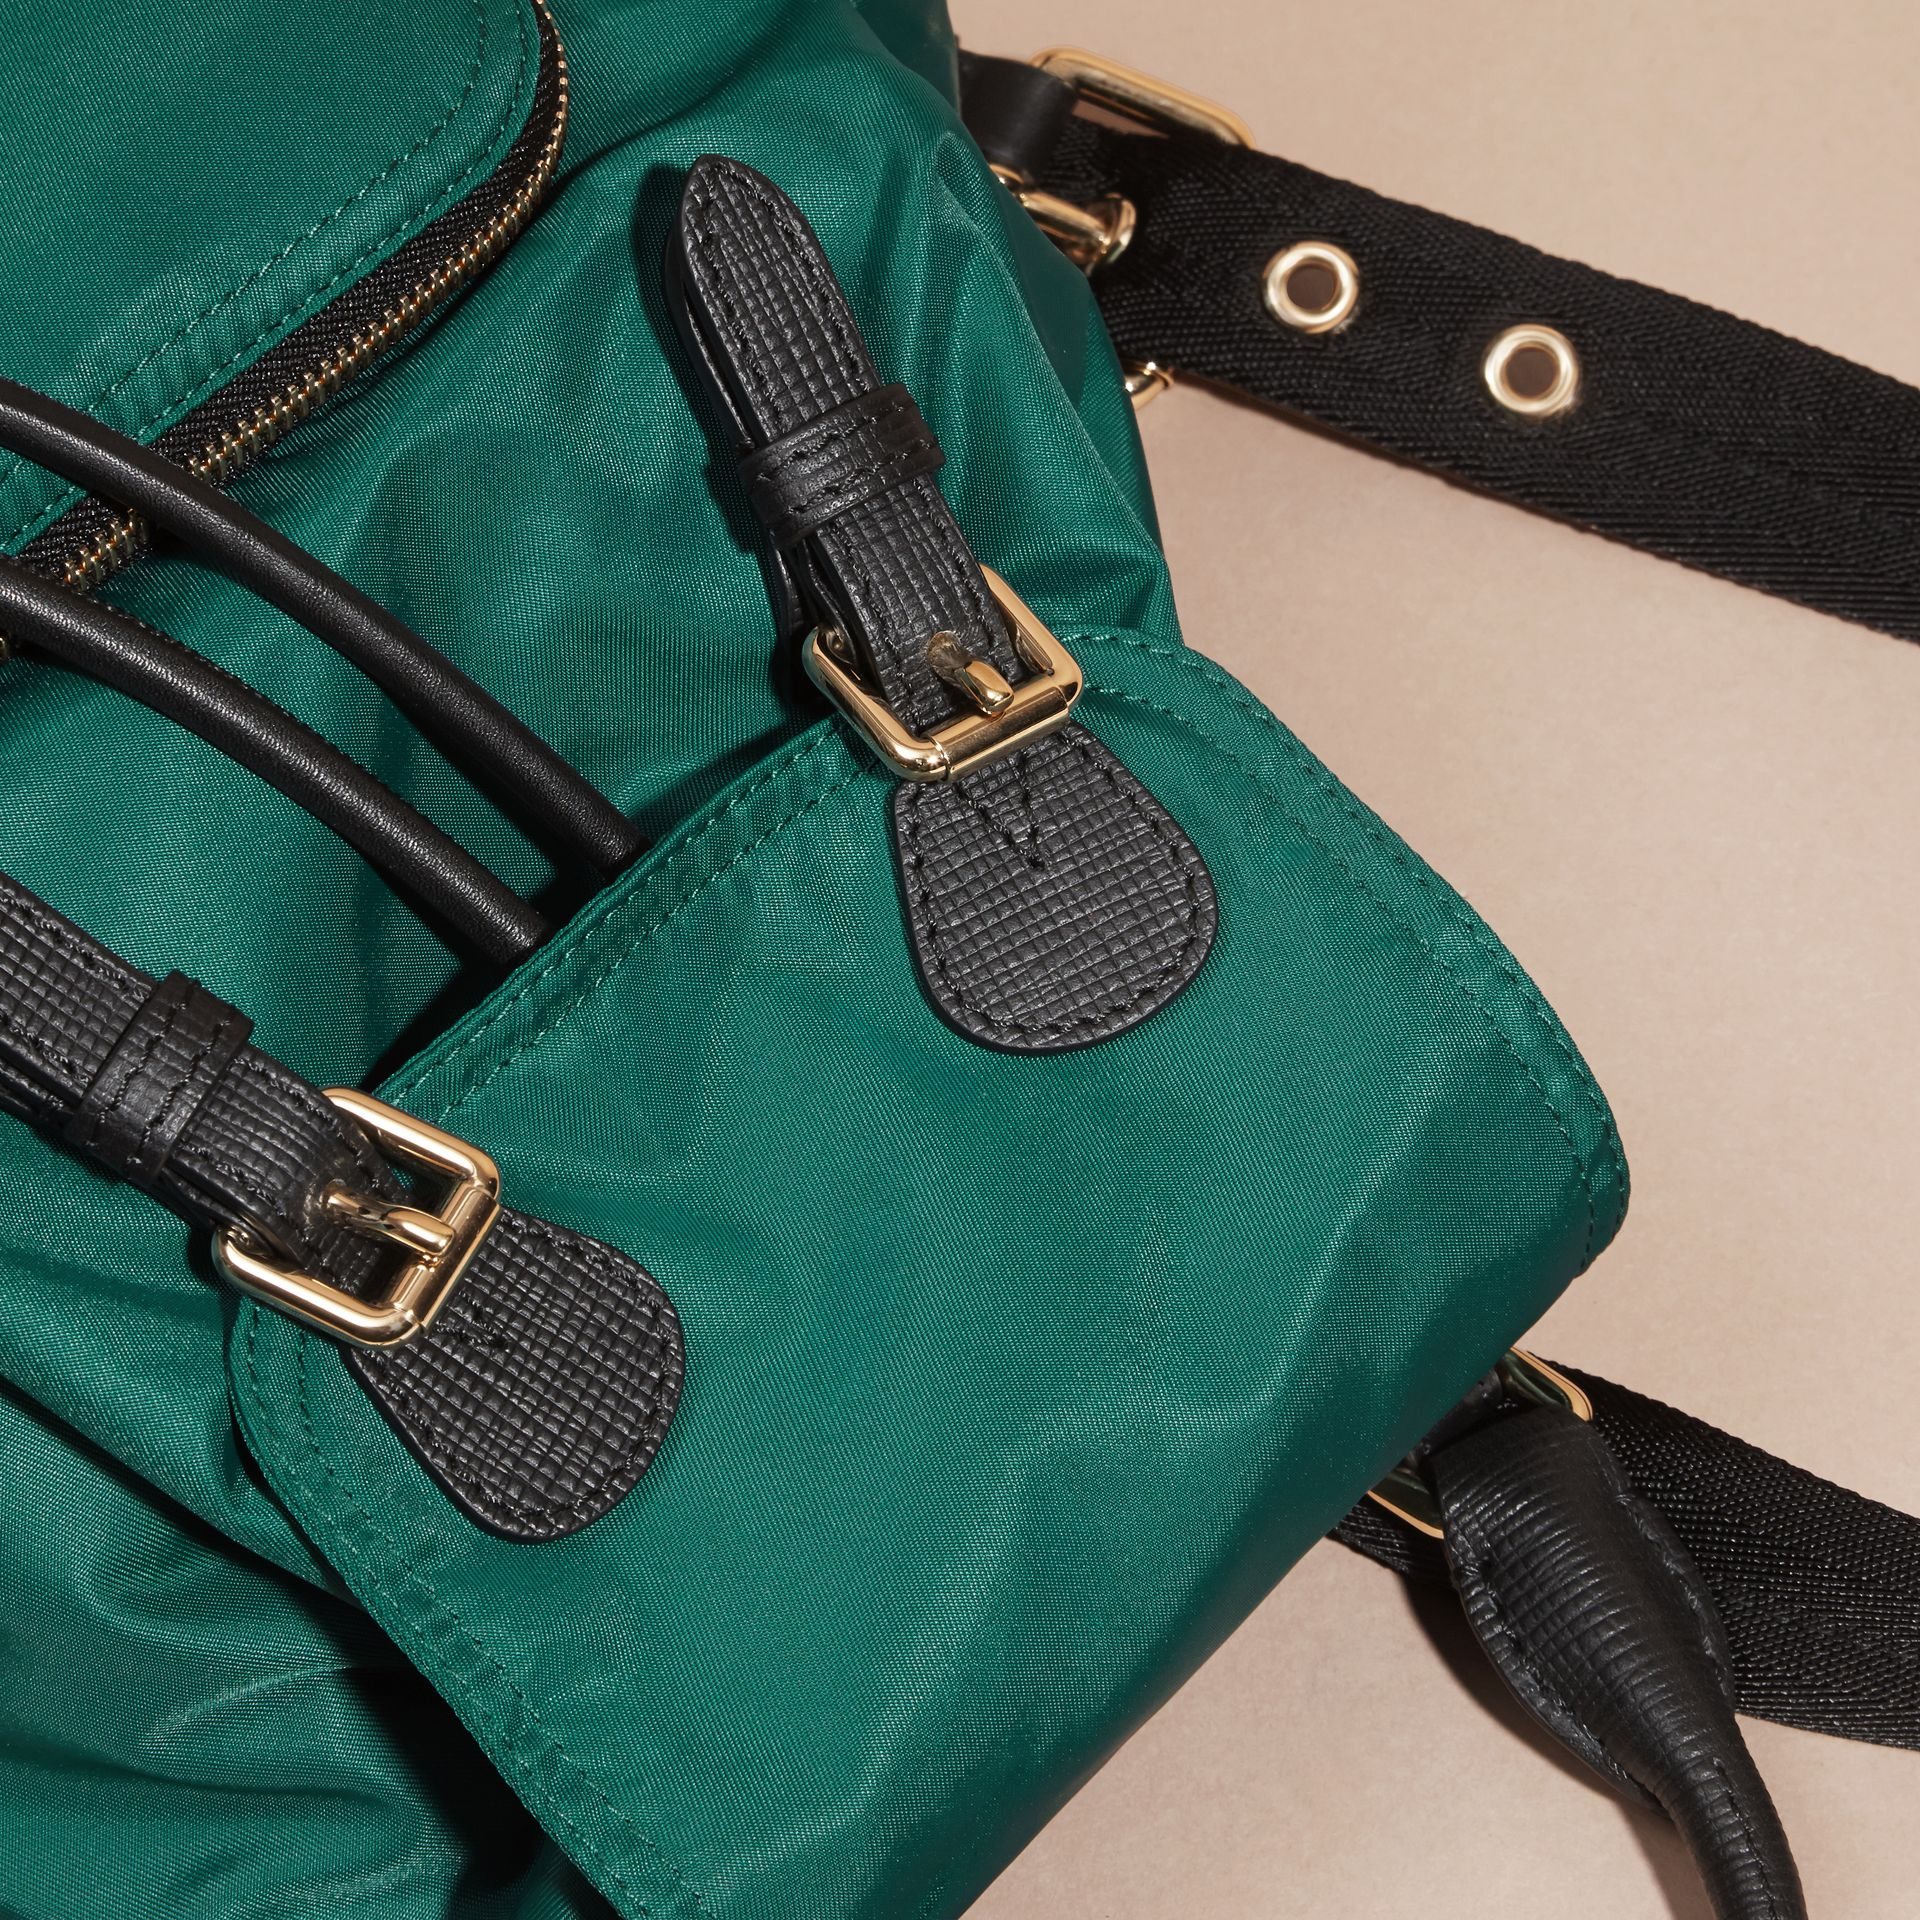 Pine green The Small Rucksack in Technical Nylon and Leather Pine Green - gallery image 2